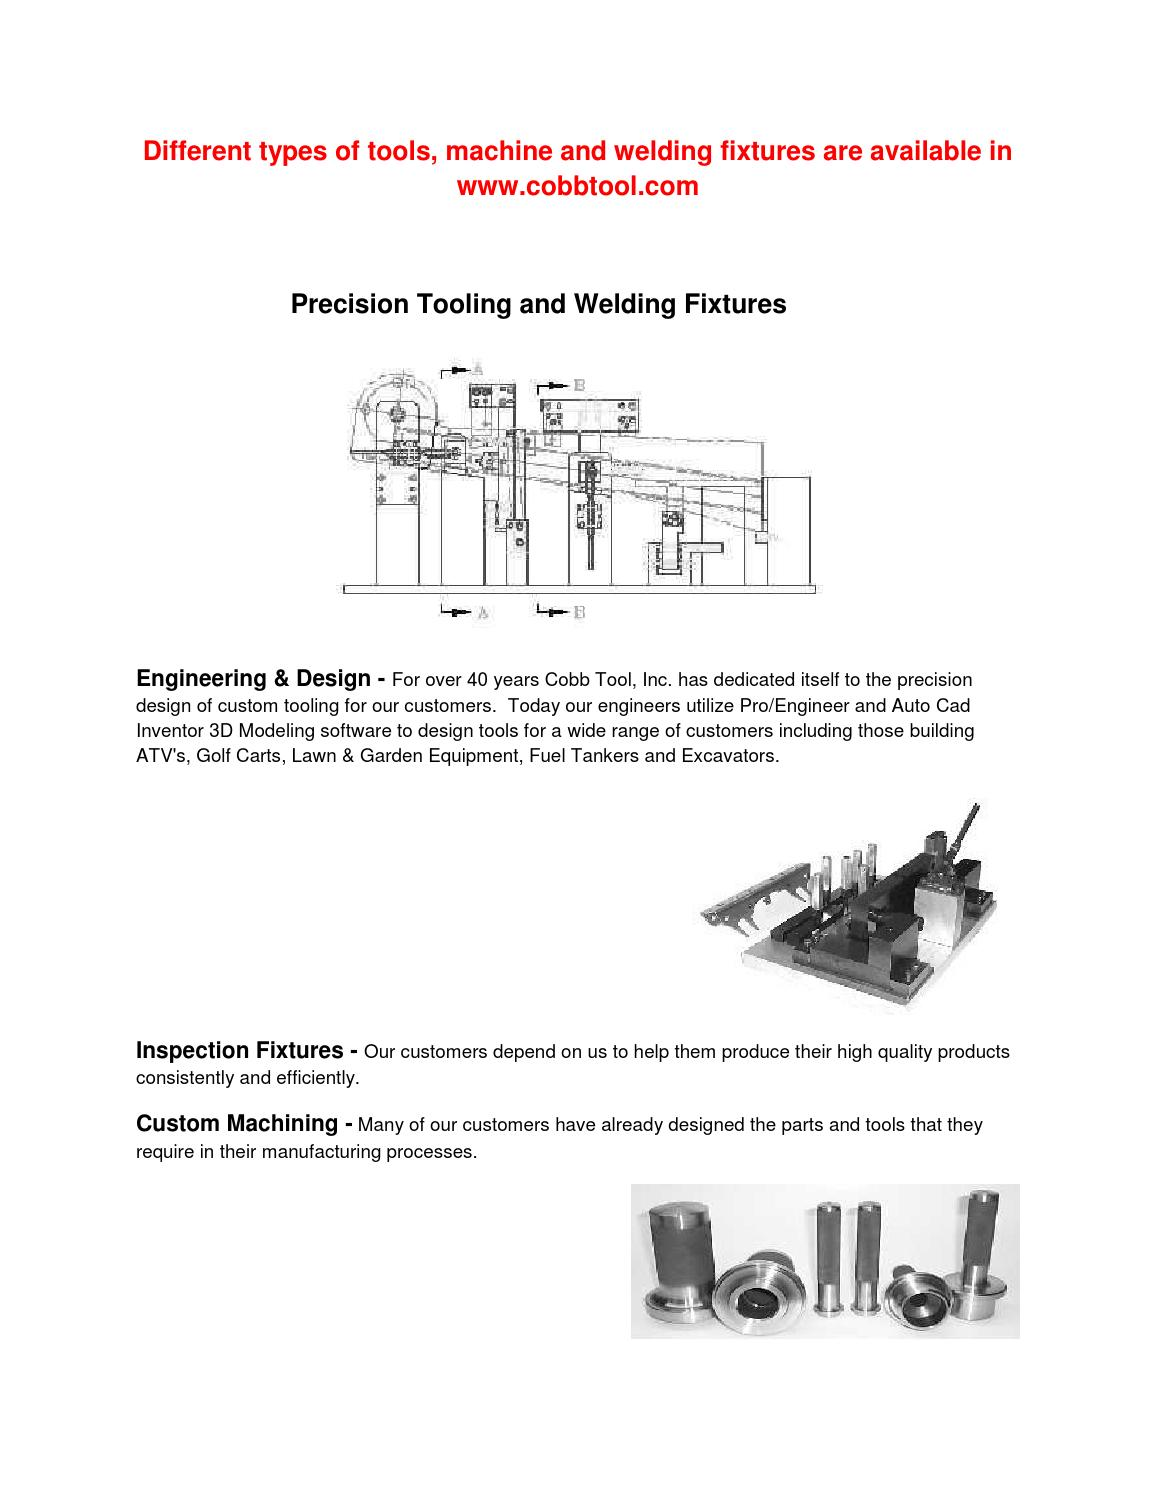 Precision Tooling And Welding Fixtures By Cobbtool Issuu Diagram Of Tools